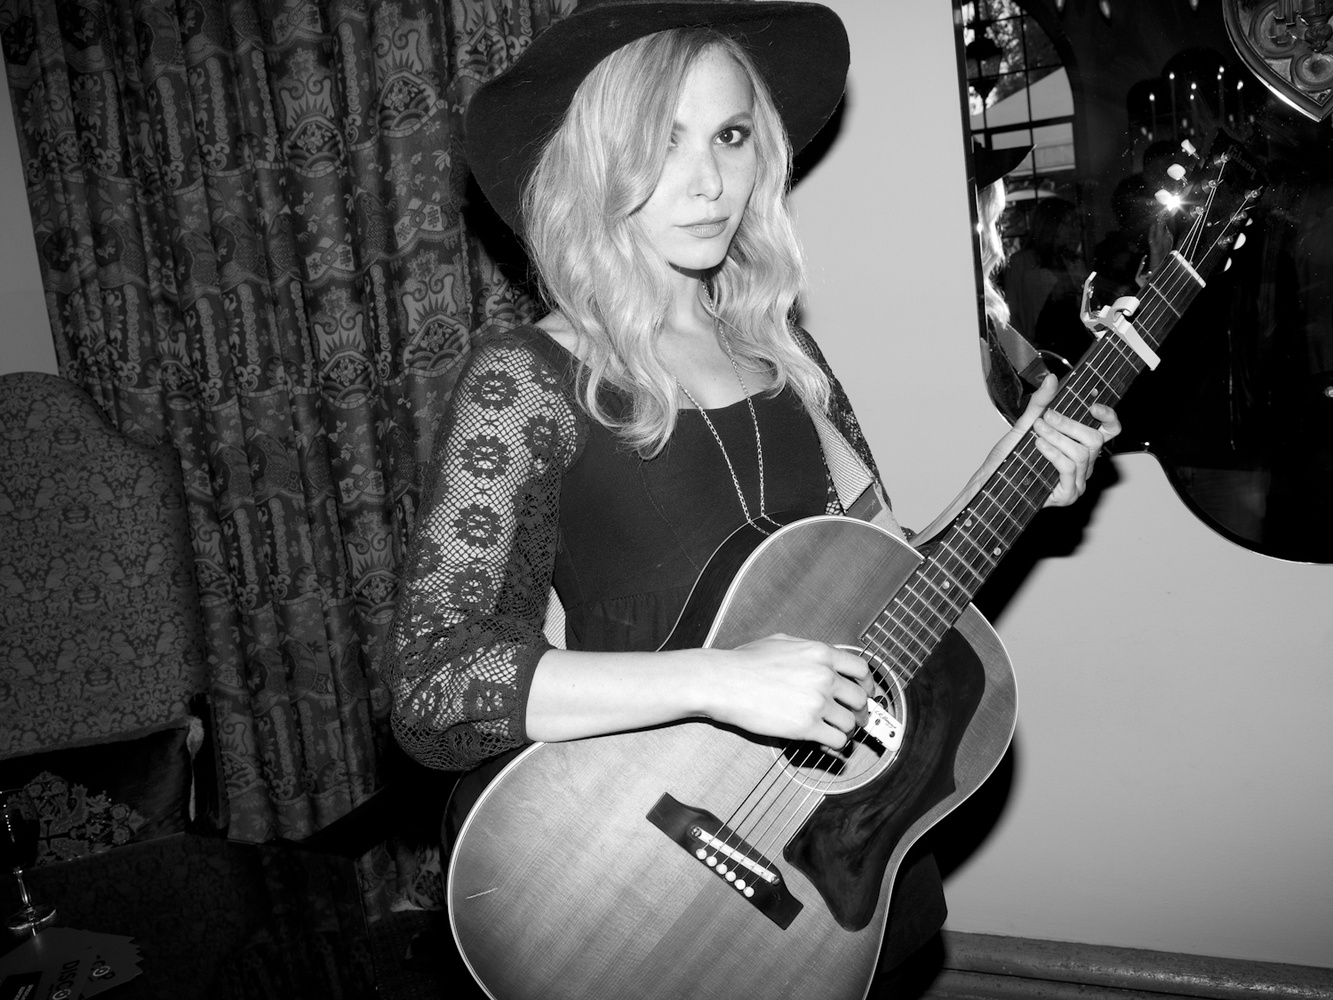 Z Berg at the Reception for 20 Years Of Freedom in South Africa with a performance by Z Berg at the Chateau Marmont in Los Angeles